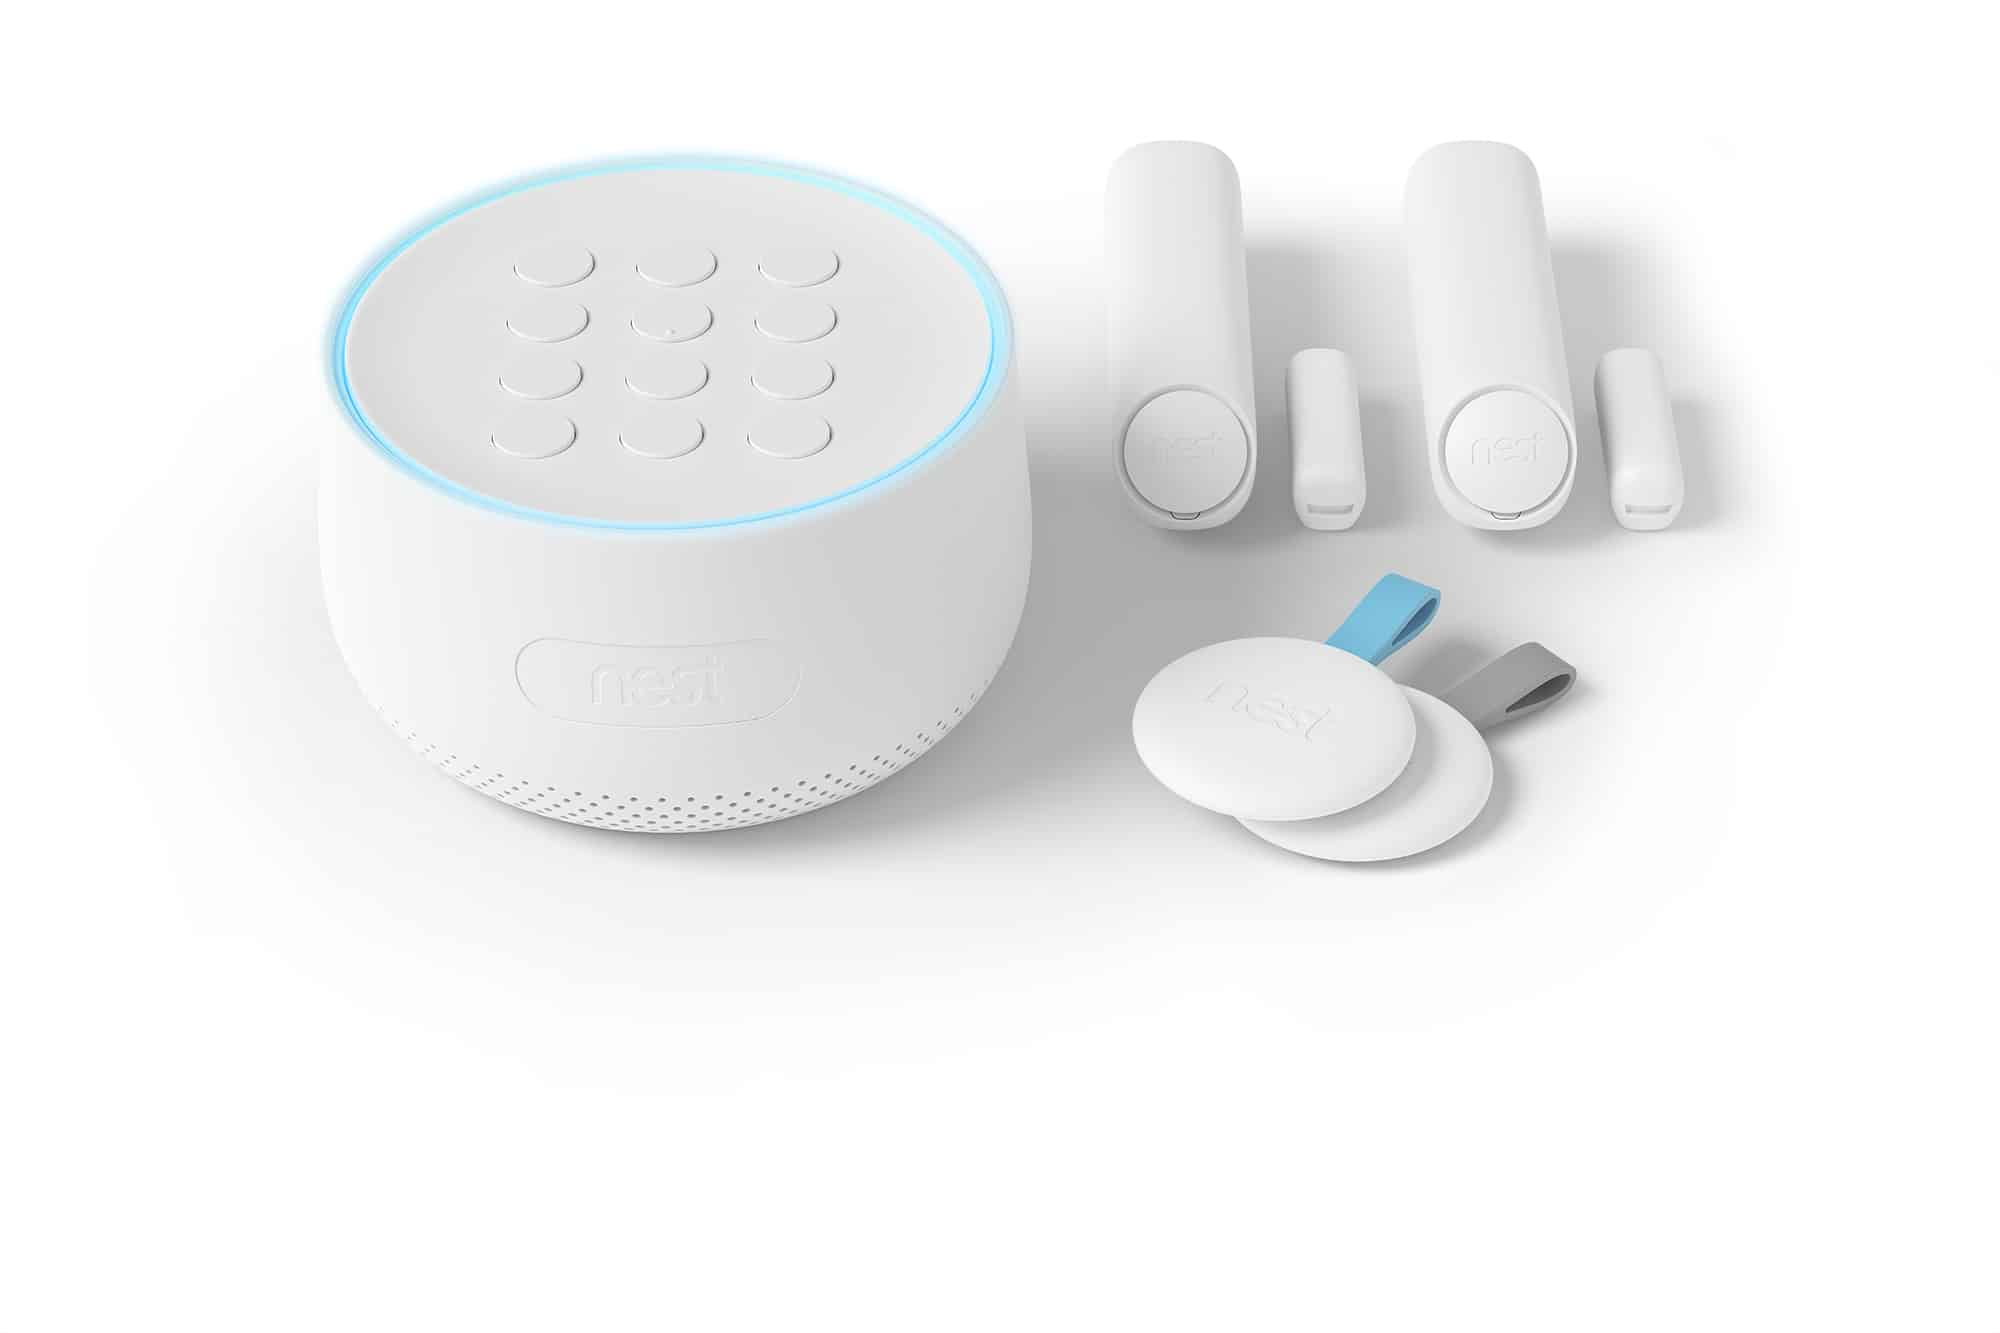 nest-secure-alarm-system-gadgetsngaming